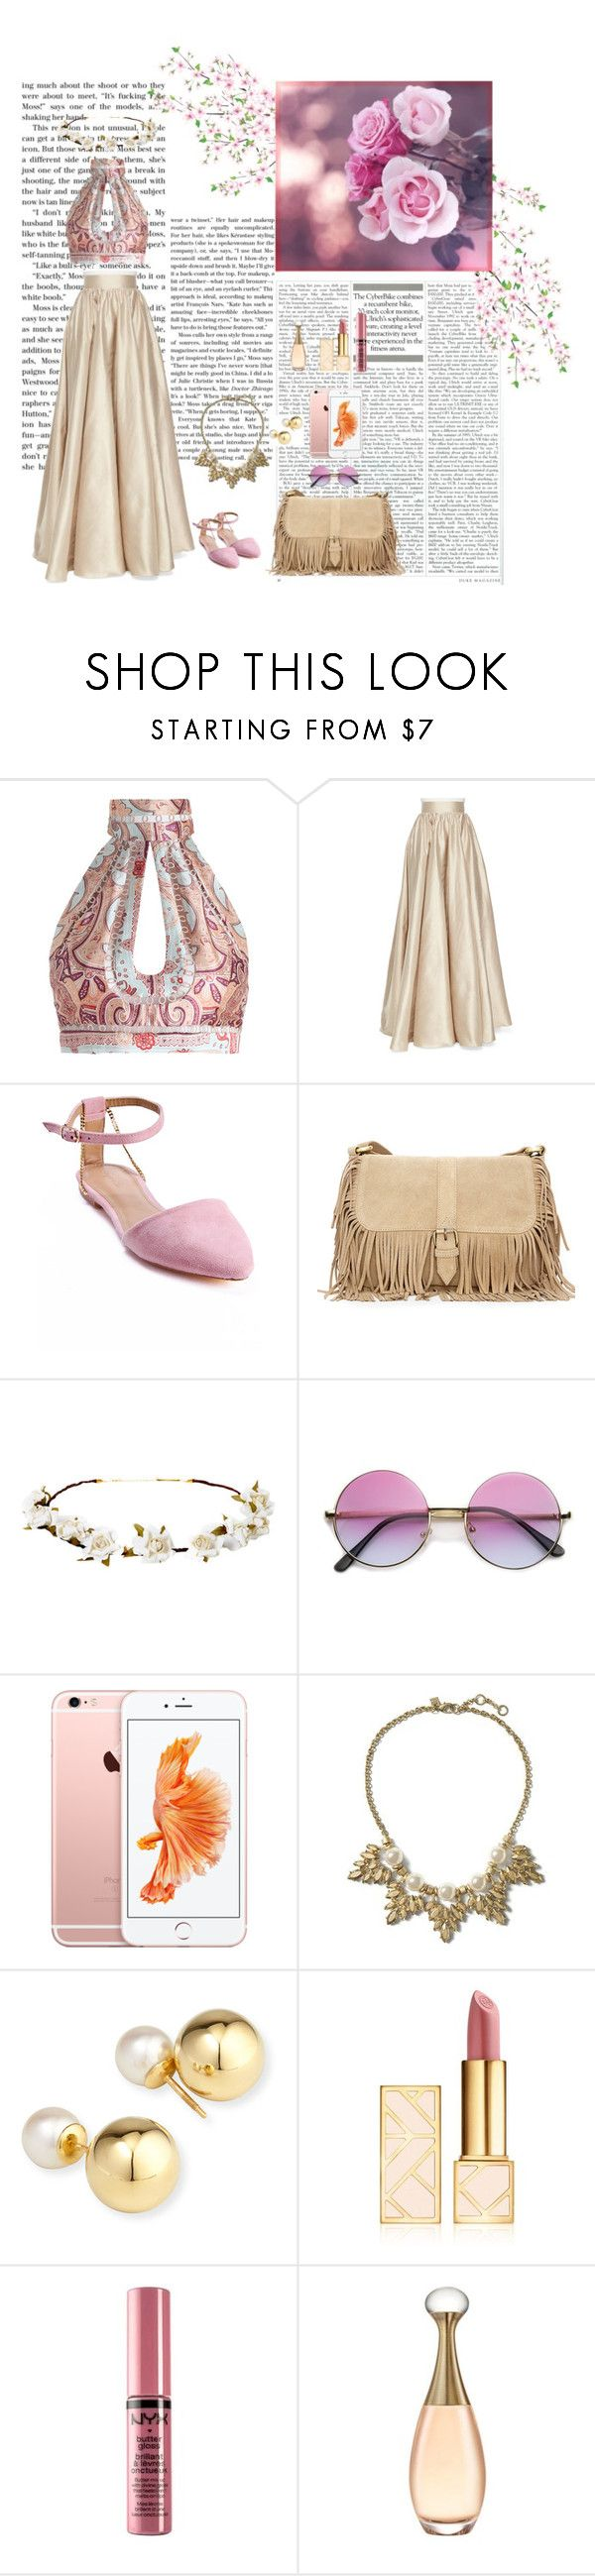 """pink boho"" by karolinakaroo ❤ liked on Polyvore featuring Zimmermann, Jenny Packham, Sergio Bari, Cult Gaia, Banana Republic, Yoko London, Tory Burch and NYX"